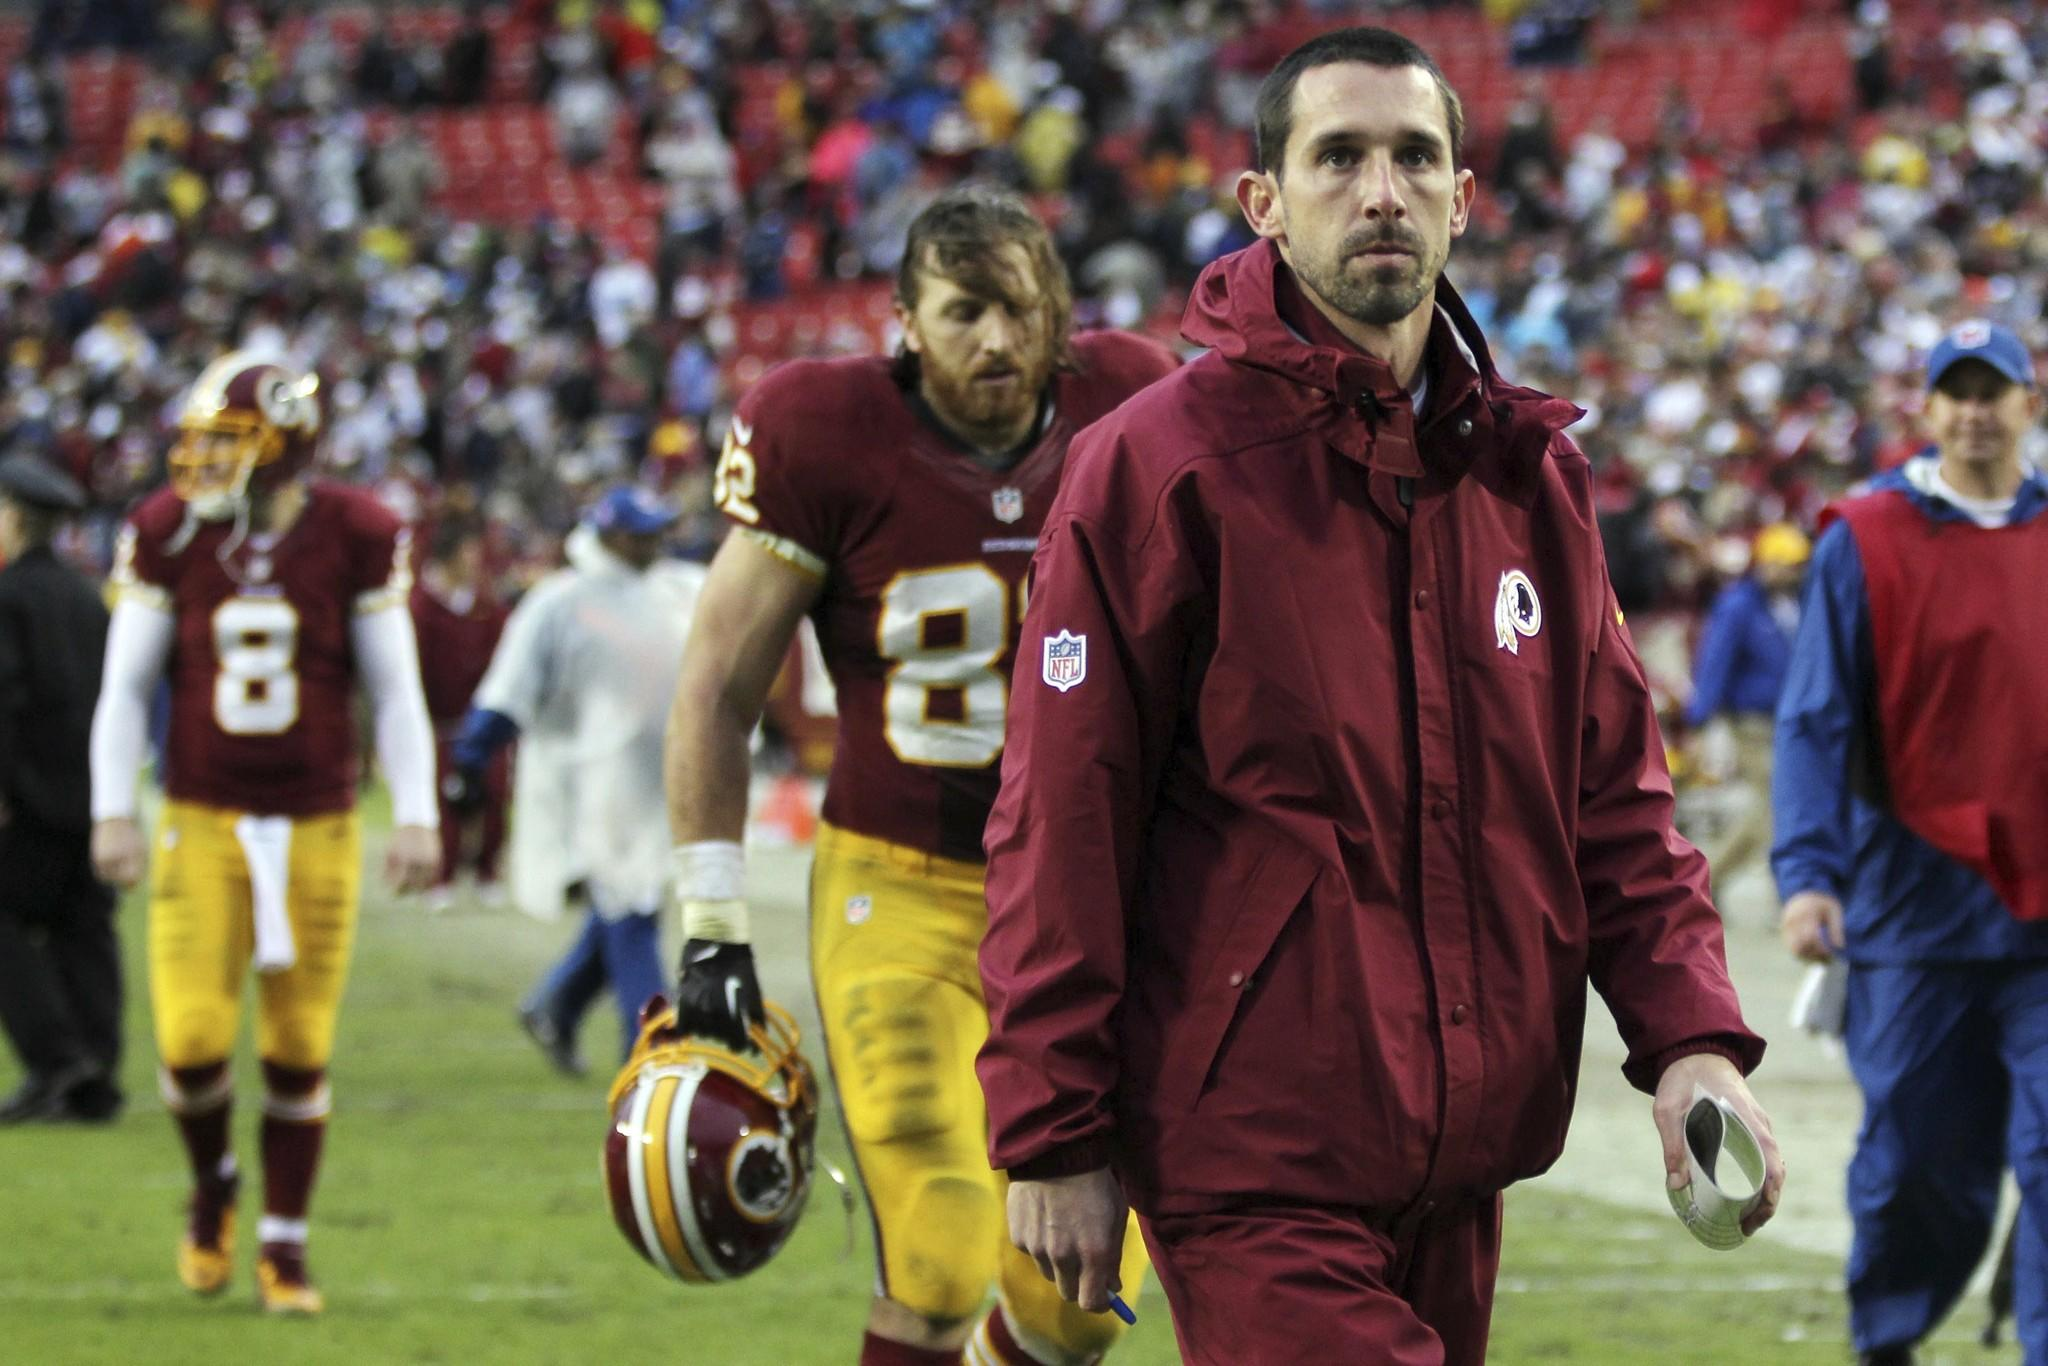 Washington Redskins offensive coordinator Kyle Shanahan walks off the field after the Redskins' game against the Dallas Cowboys at FedEx Field. The Cowboys won 24-23.